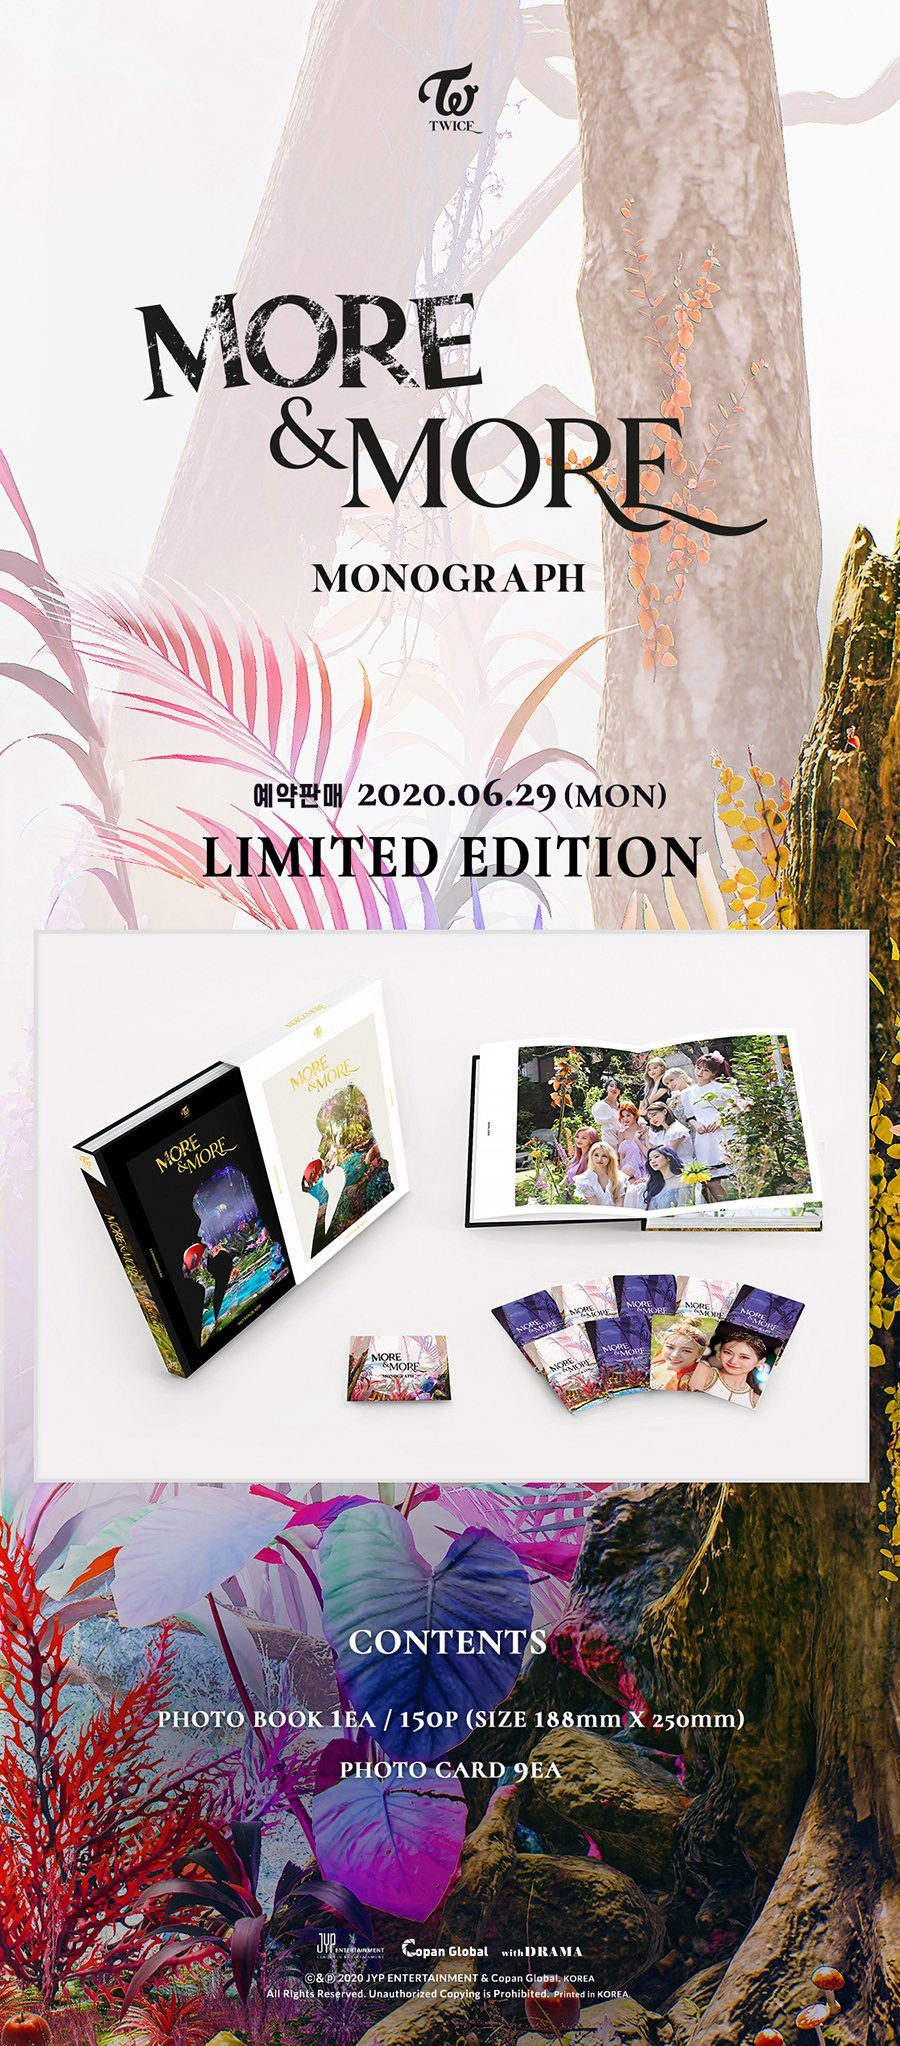 TWICE gives preview of contents inside 'More & More' monograph limited edition | allkpop